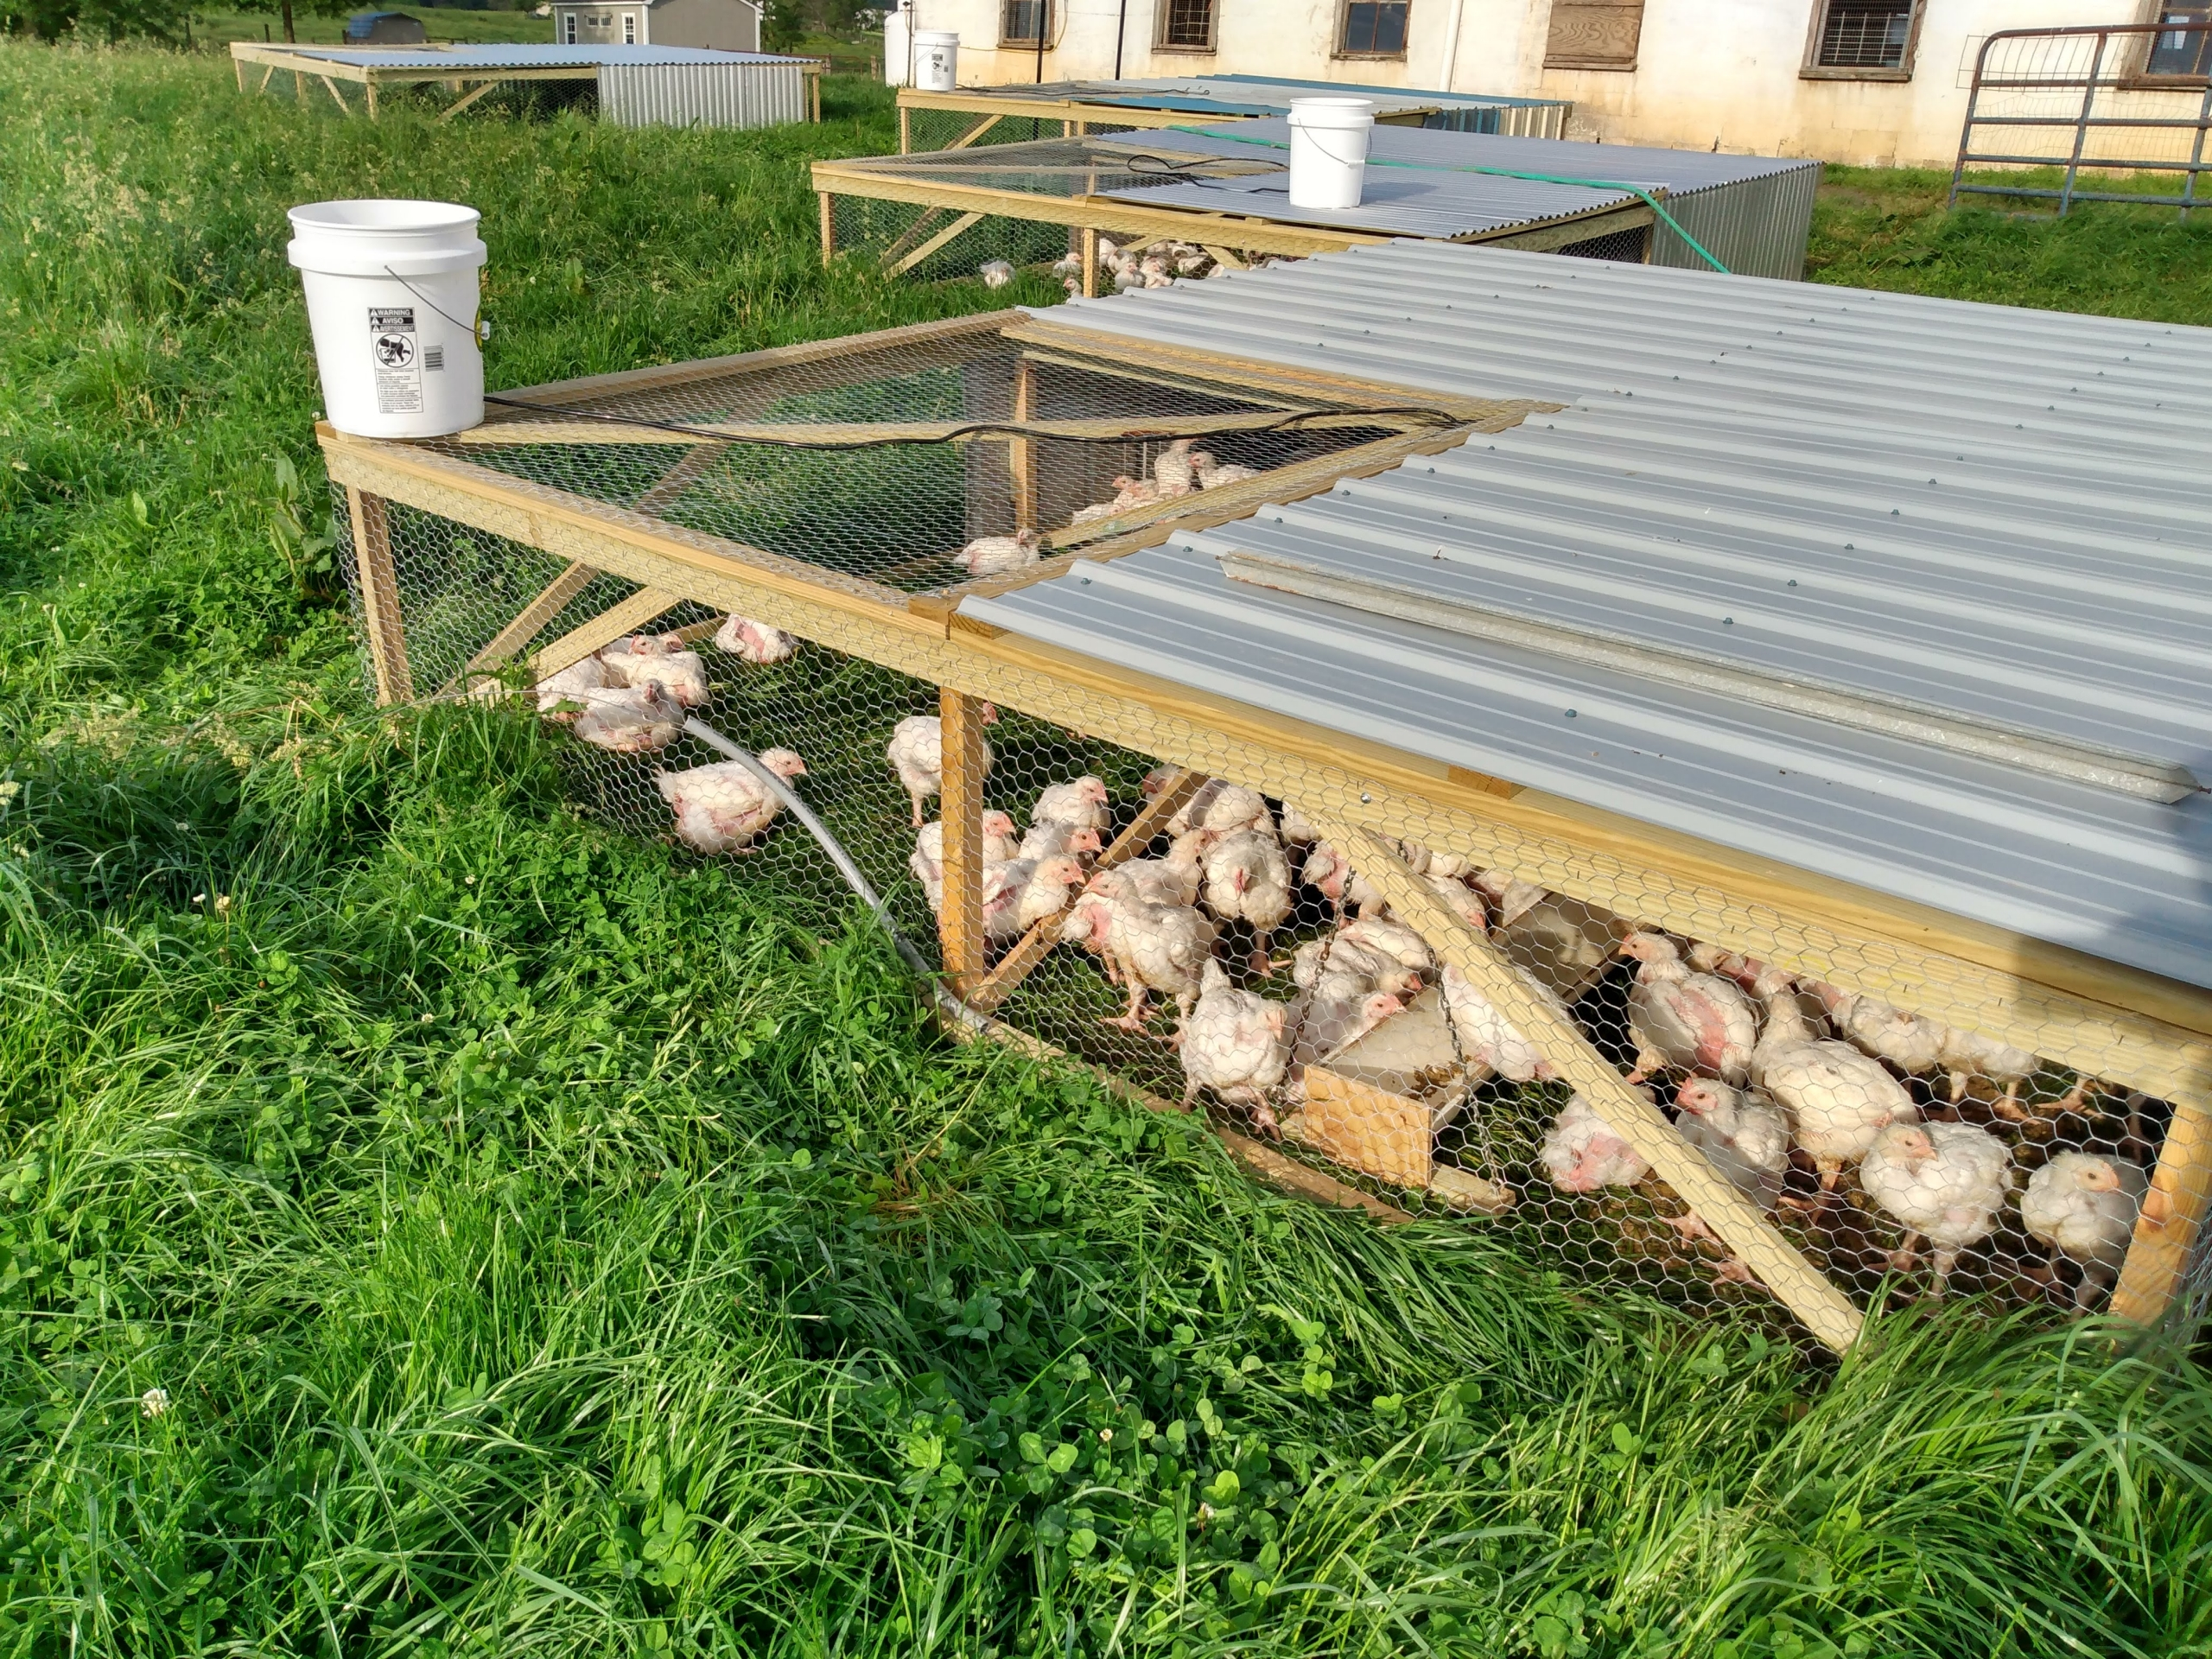 Broiler feed and chickens